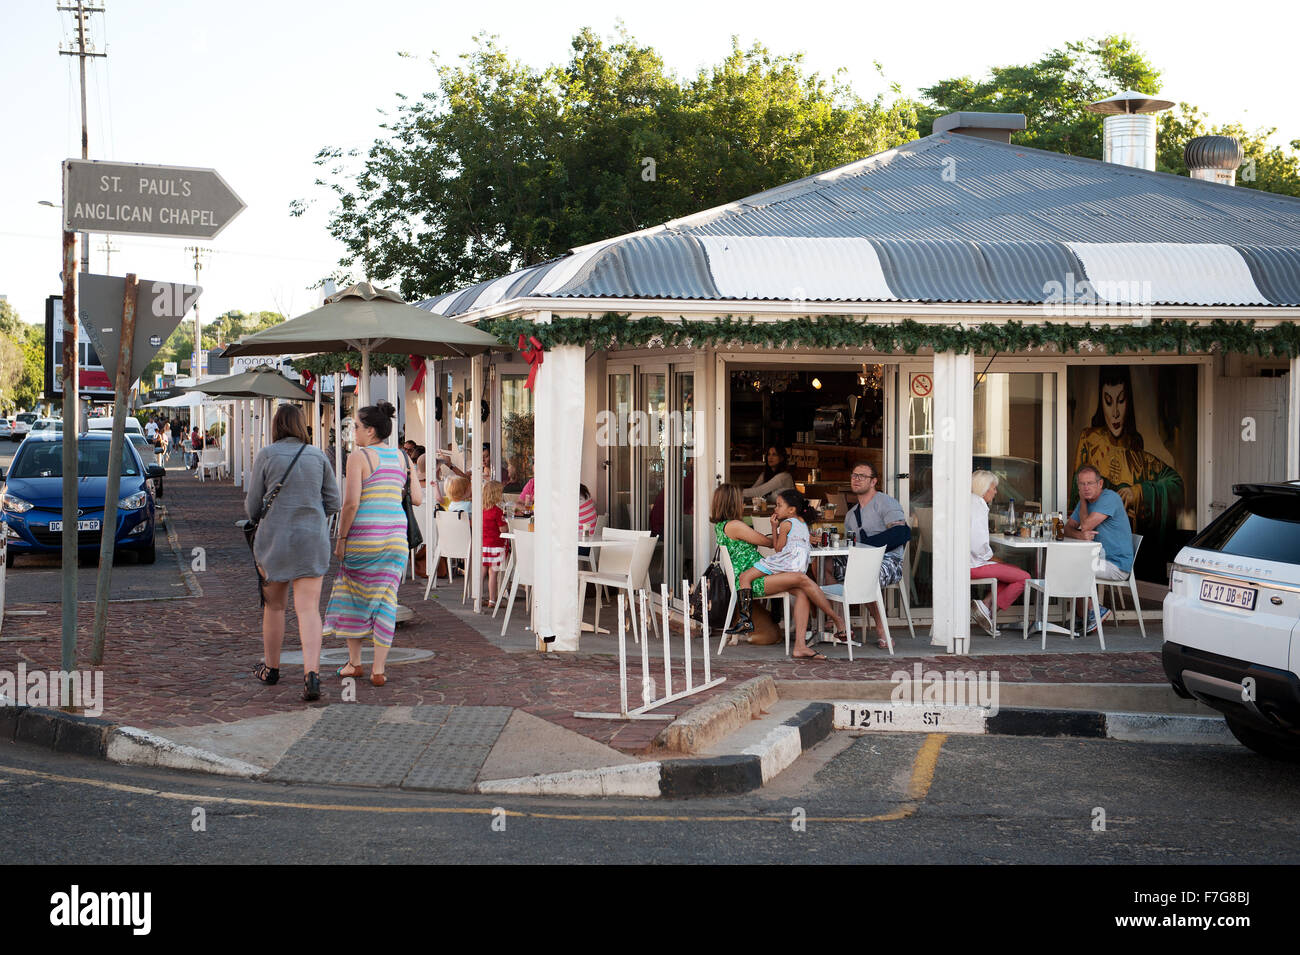 The Pankhurst neighbourhood of Johannesburg, South Africa. - Stock Image